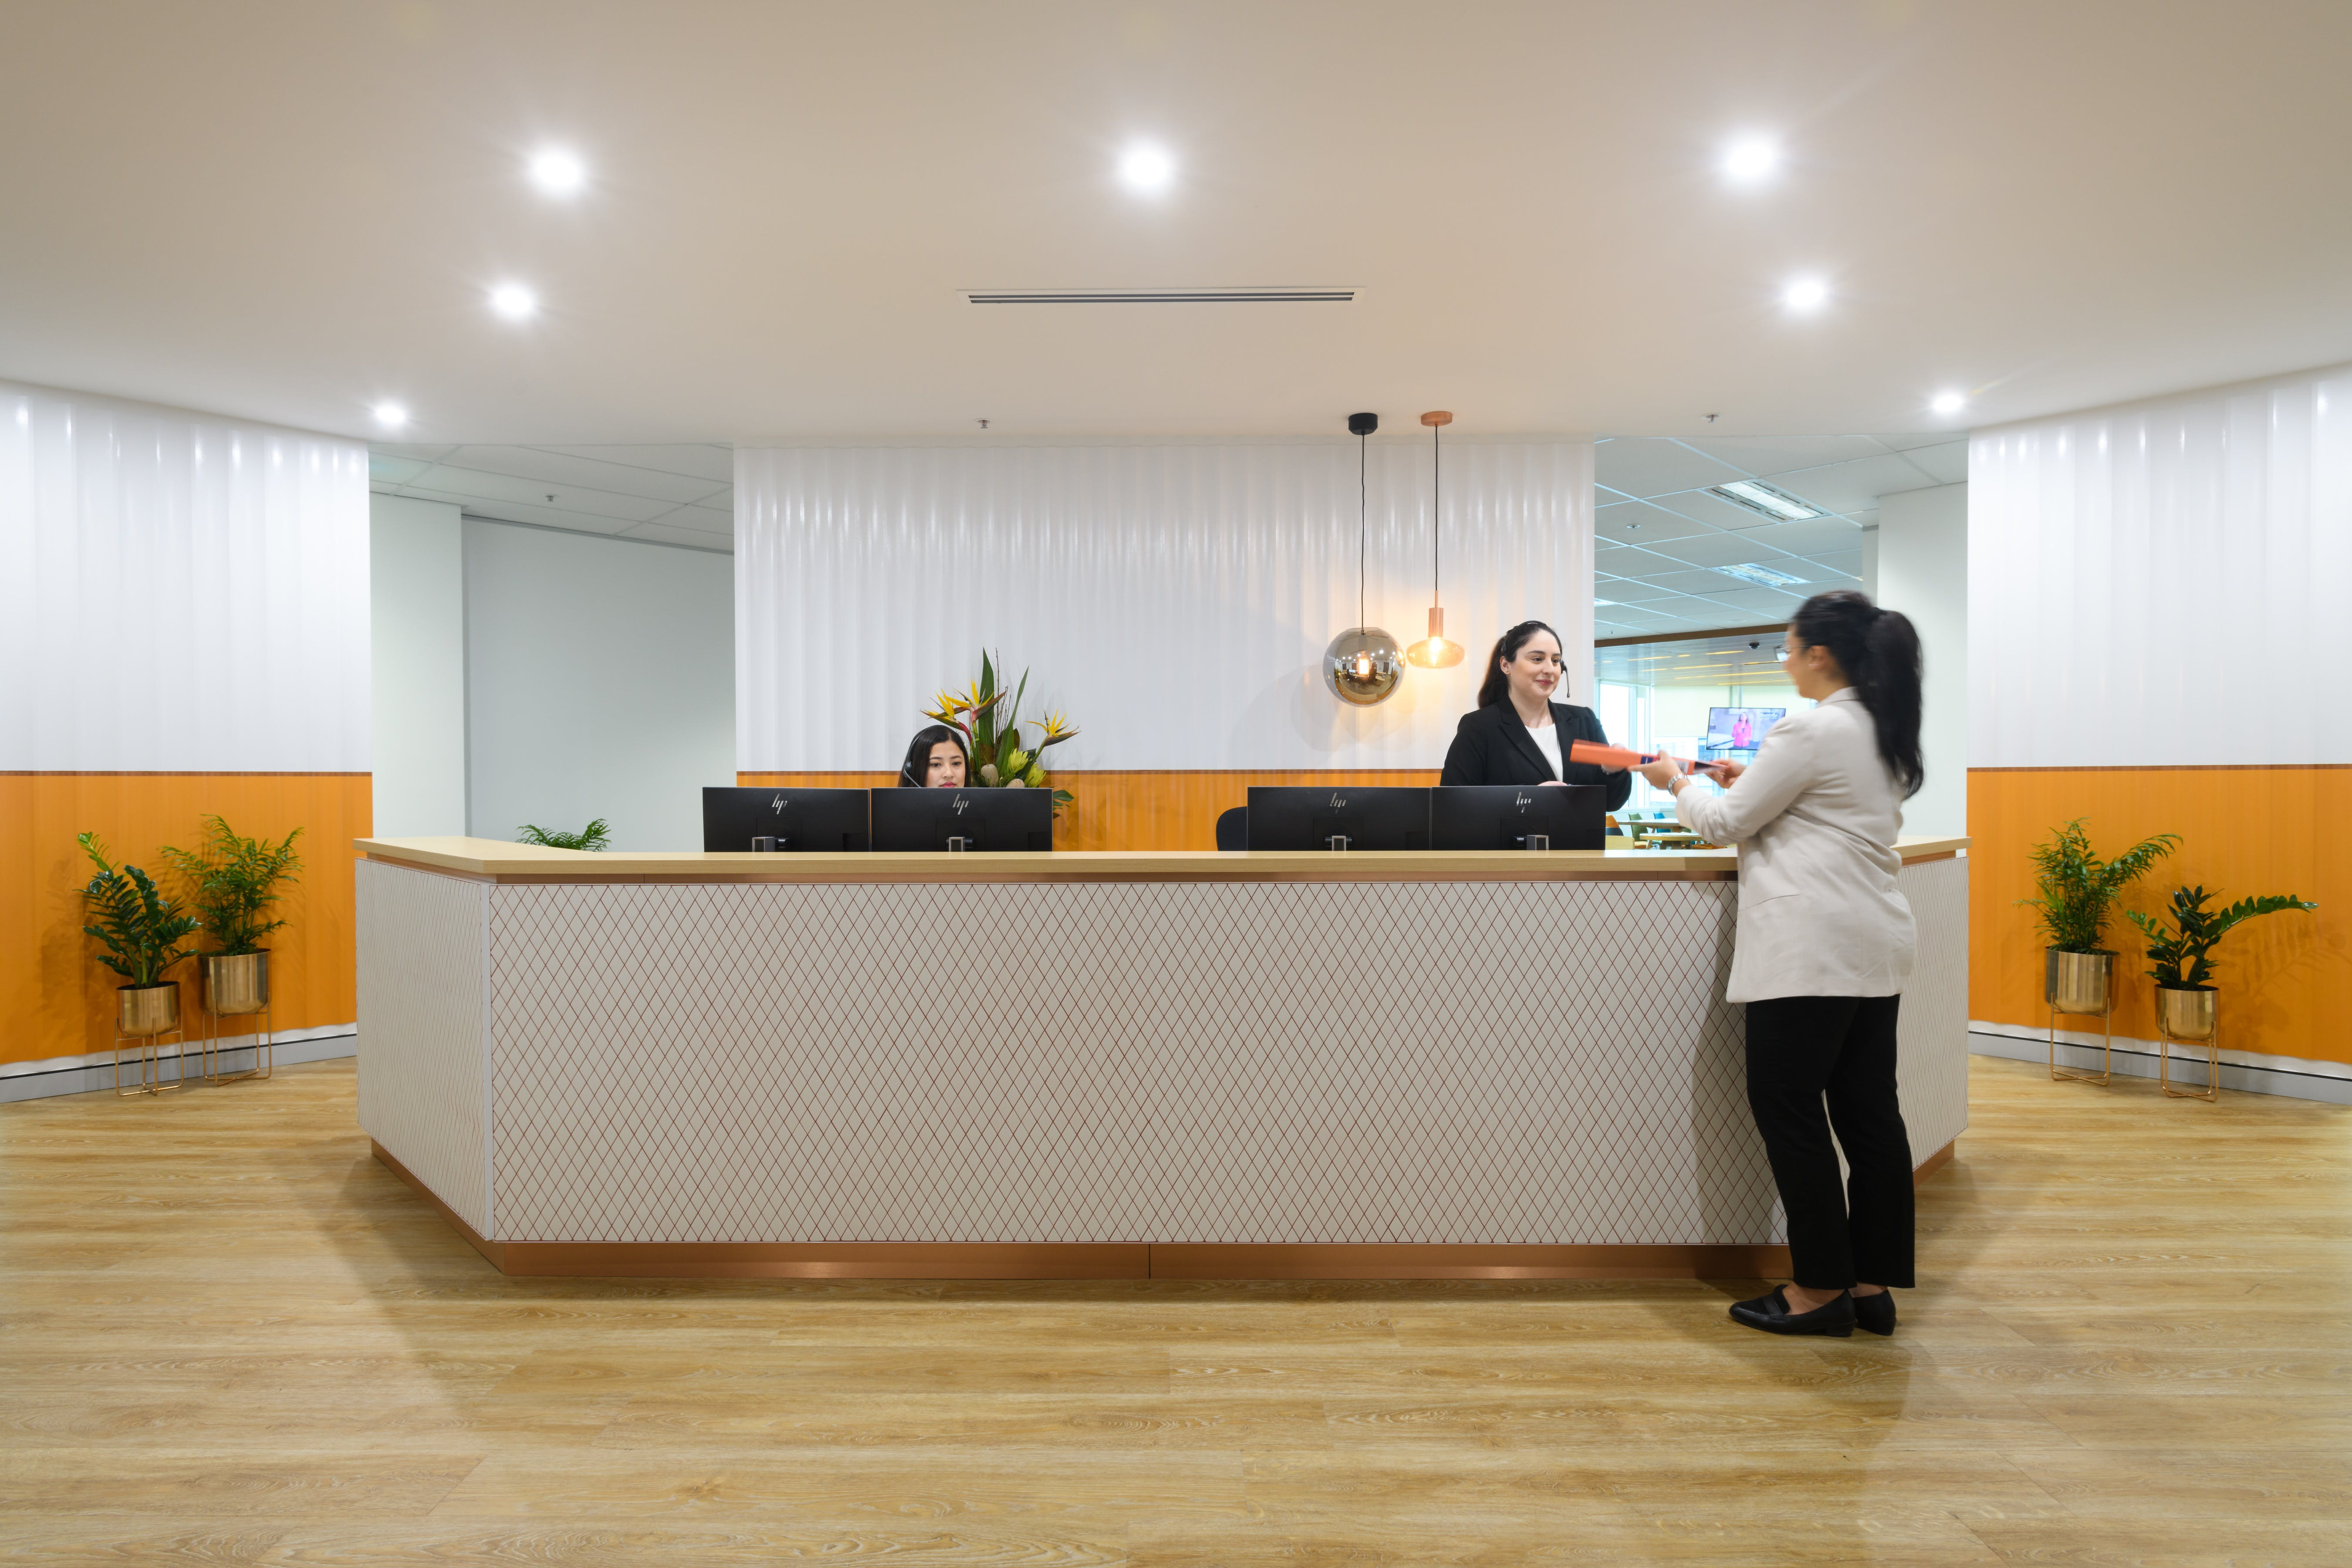 Boardroom, meeting room at Serviced Offices International (SOI) Chatswood, image 2